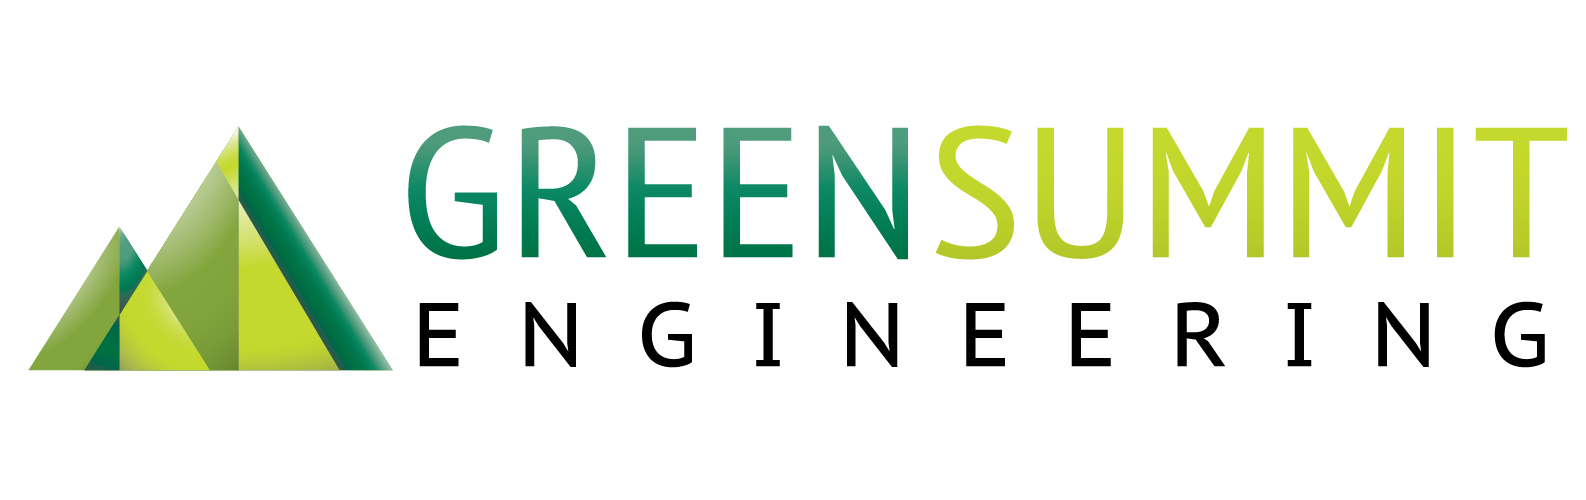 Green Summit Engineering